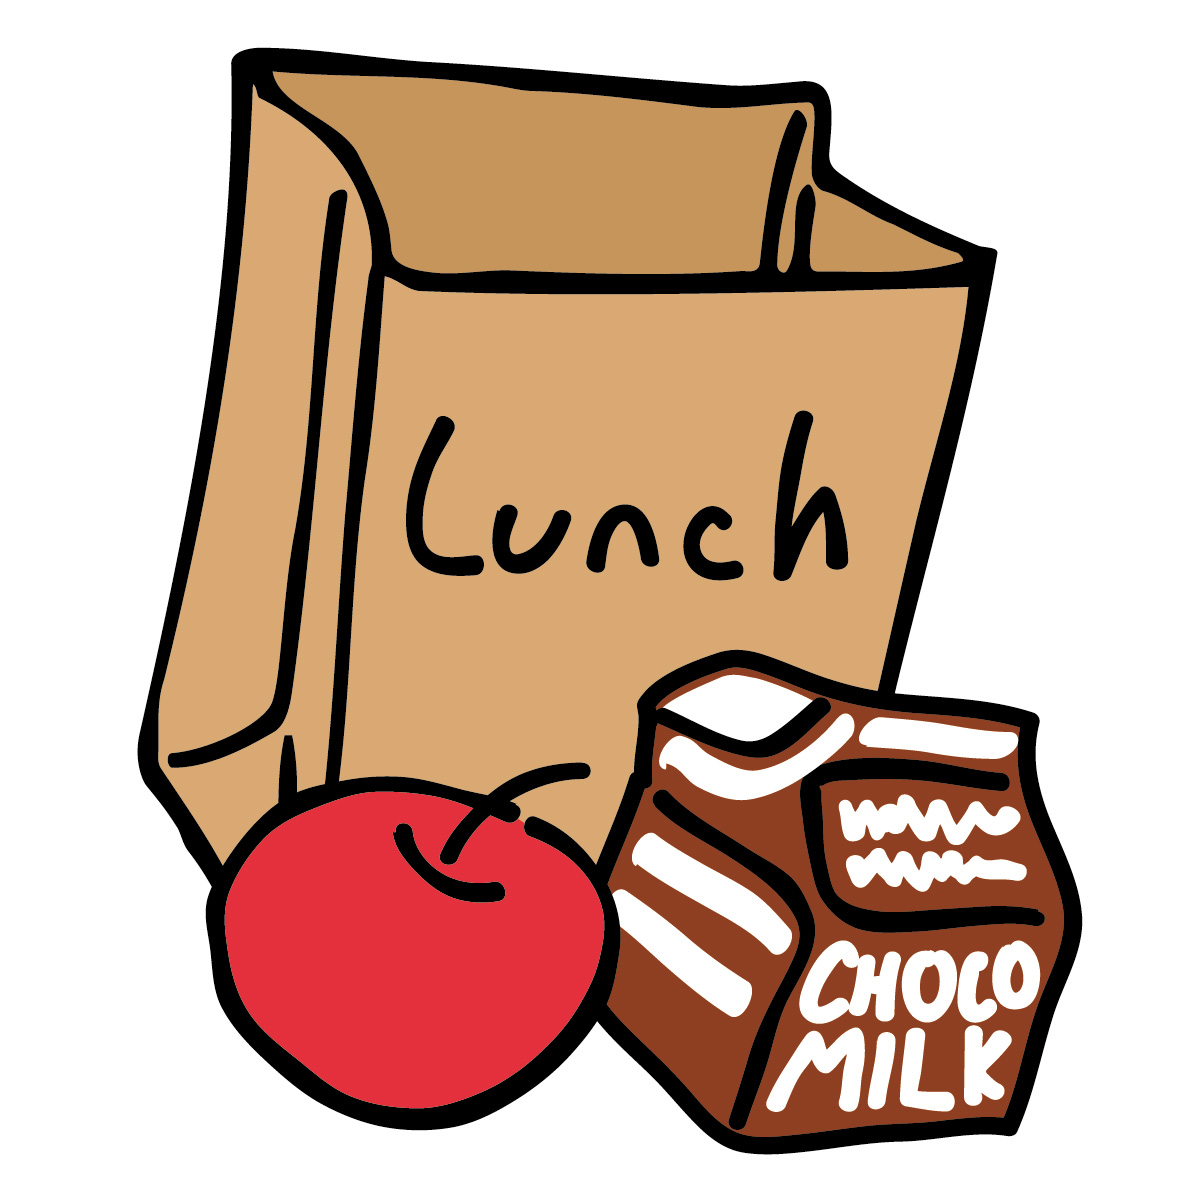 lunch lady clip art lunch clipart panda free clipart Elementary Lunch Clip Art Lunch Lady Cartoon